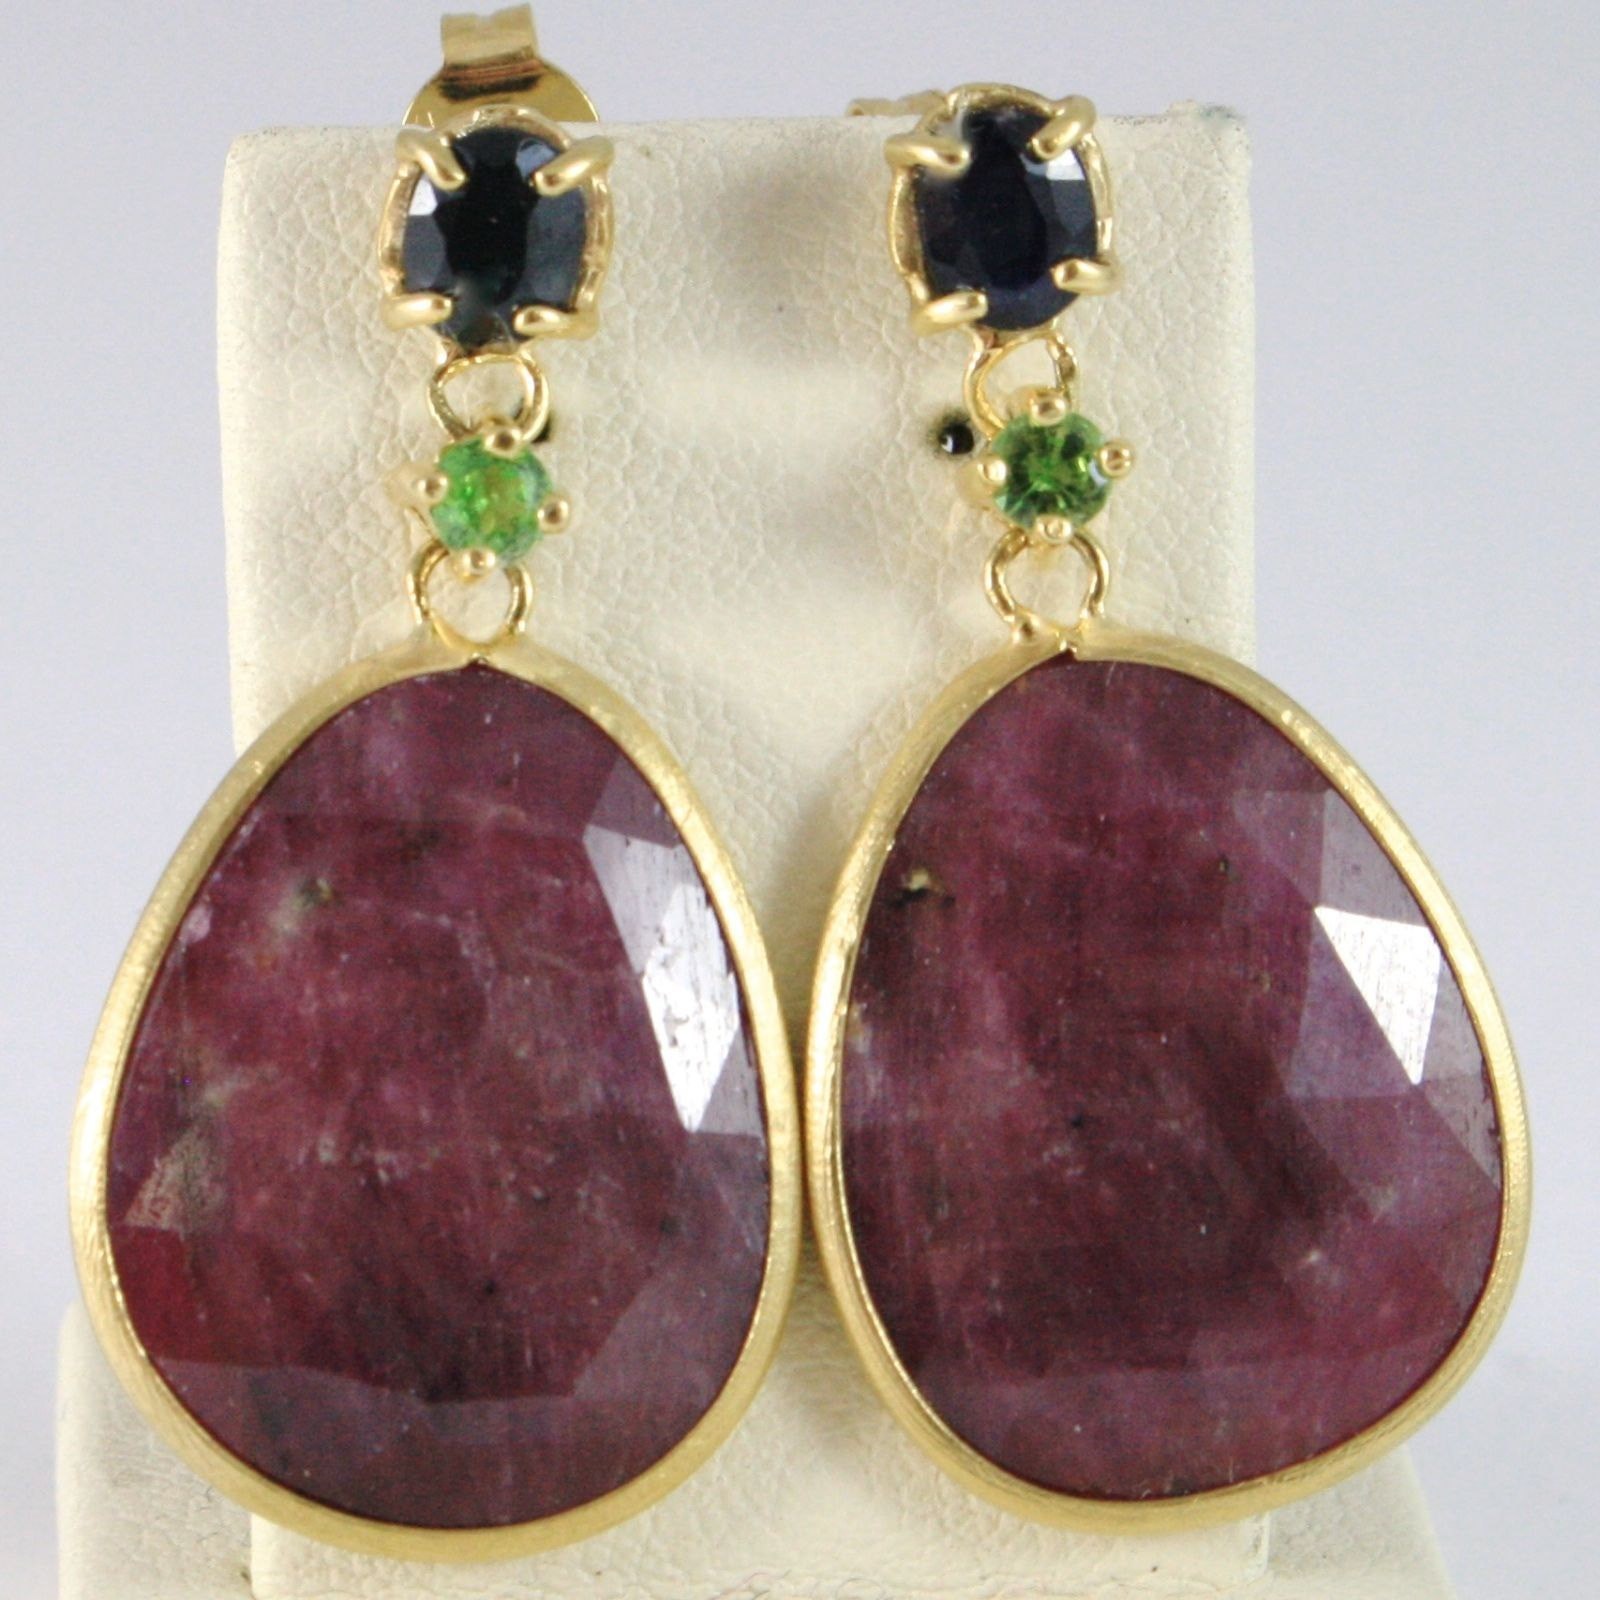 9K YELLOW GOLD PENDANT EARRINGS, DROP RUBY, GREEN PERIDOT AND BLUE SAPPHIRE